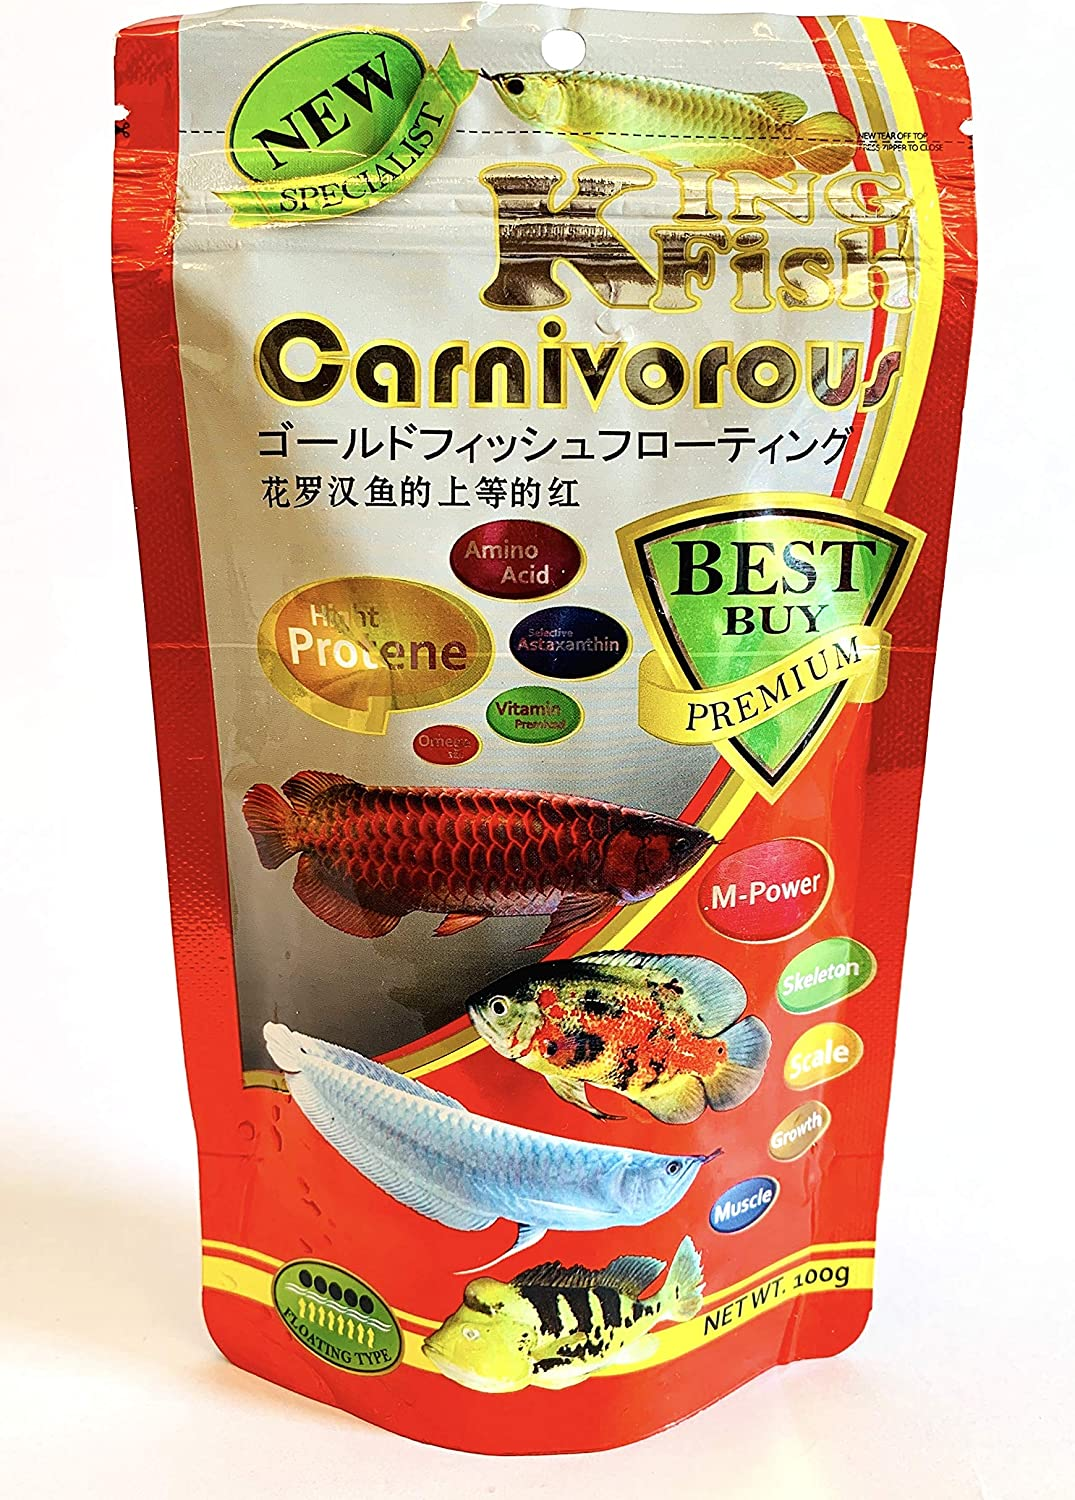 New Fish Food King Fish Carnivorous, Best BUY Premiun Hight Protenefloating Type 100 g.